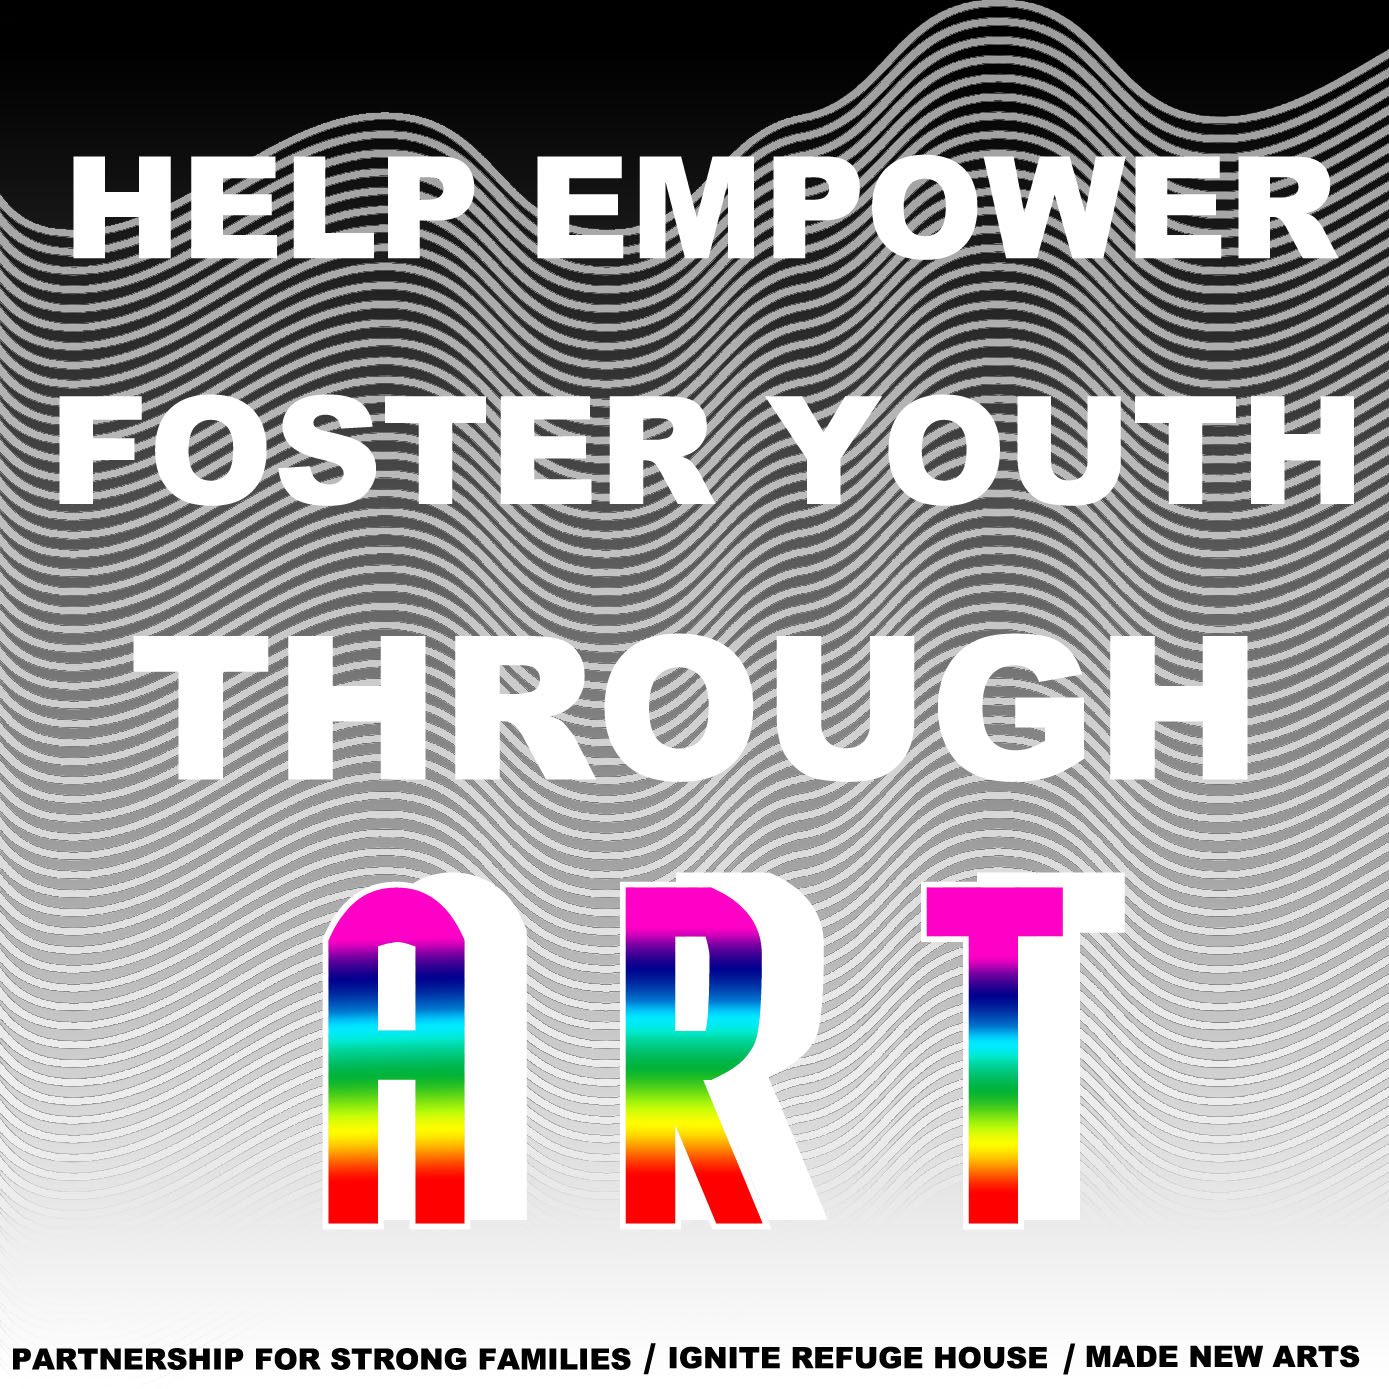 Hilary White Art, Made New Arts, Foster Kids, Adopt, Partnership for strong families, ignite refuge house